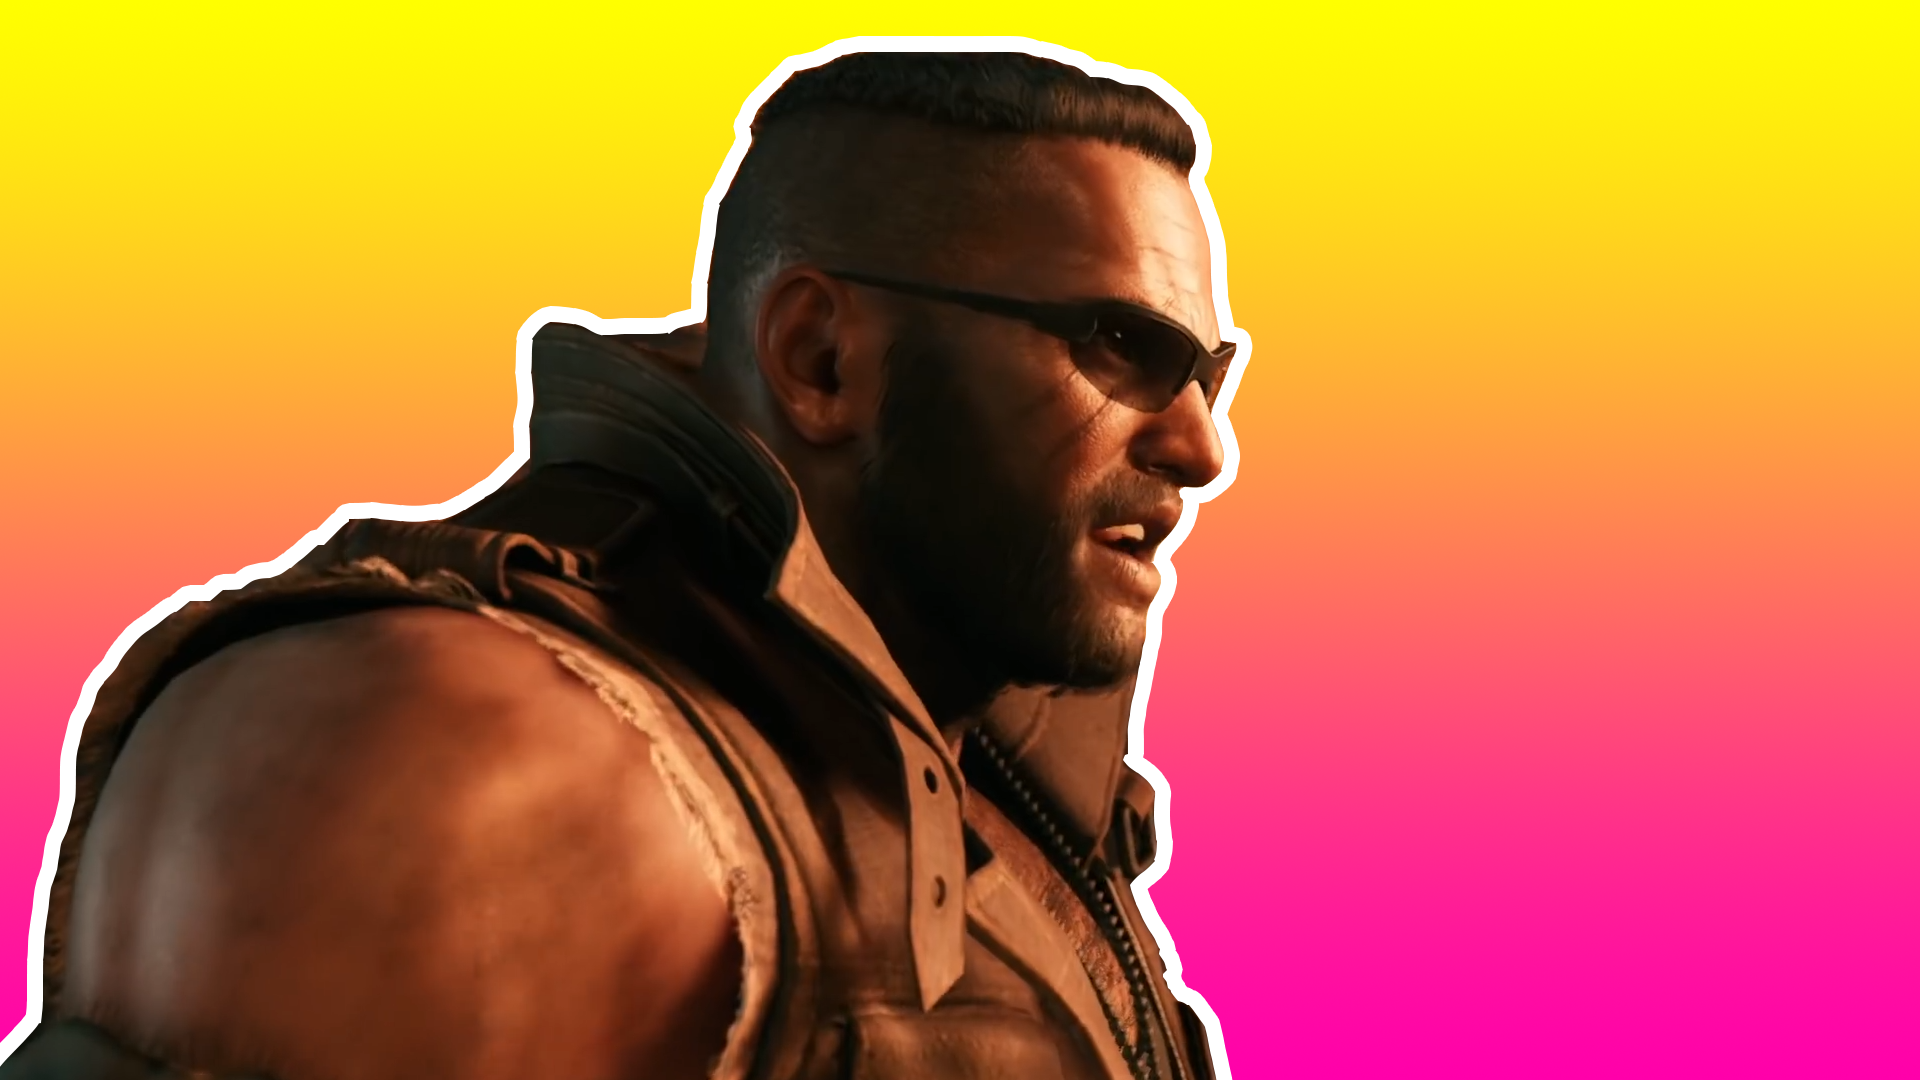 Fans Are Concerned About Barret's Voice In The Final Fantasy